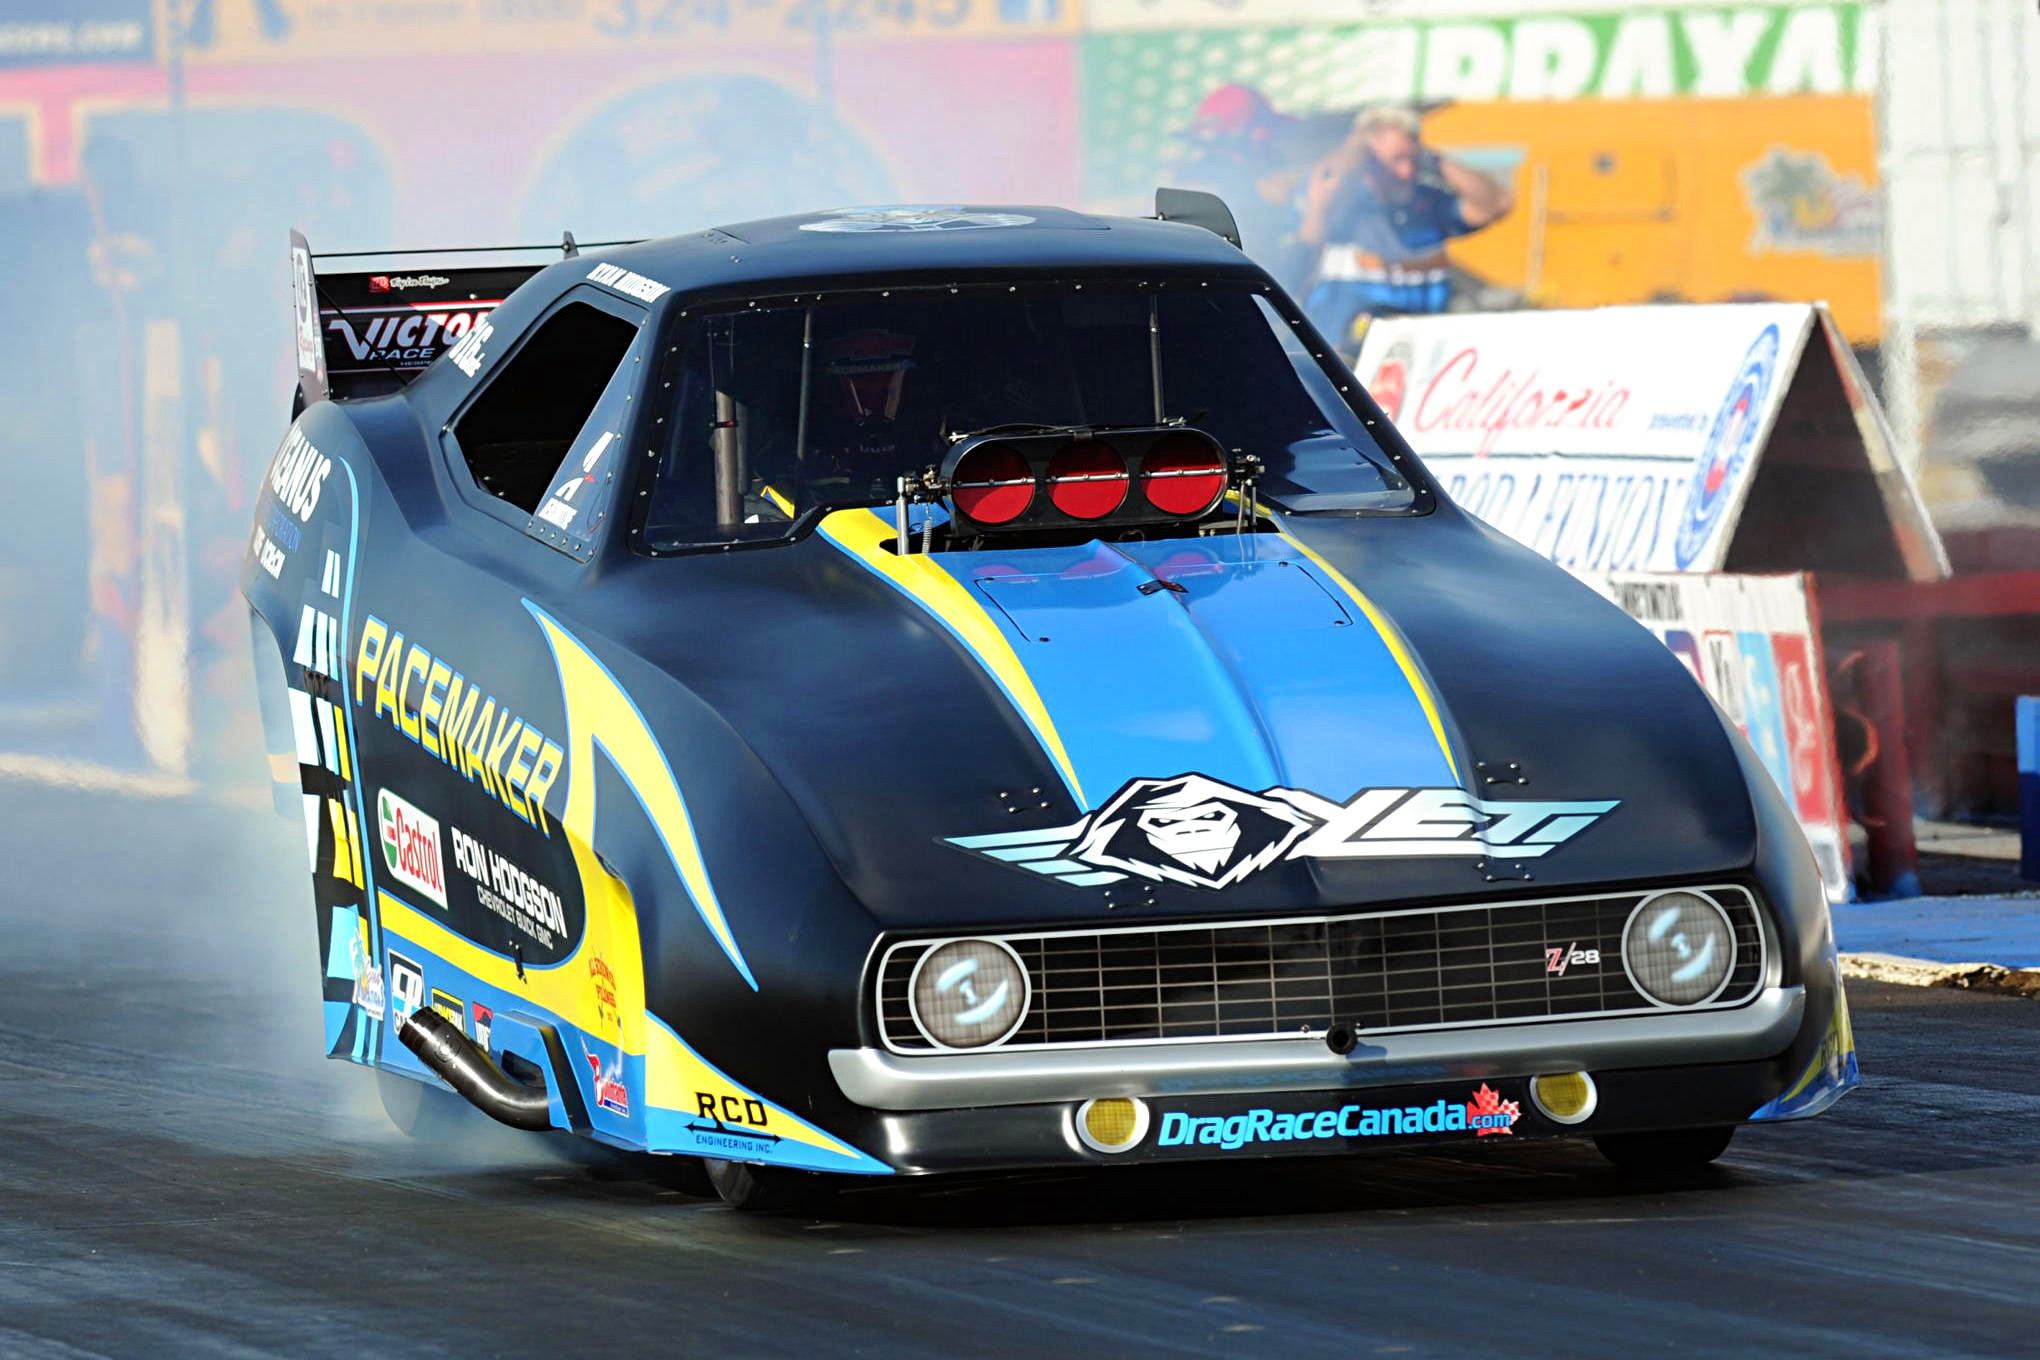 Camaros Finish 1-2-3 in NHRA Heritage Series Points Chase